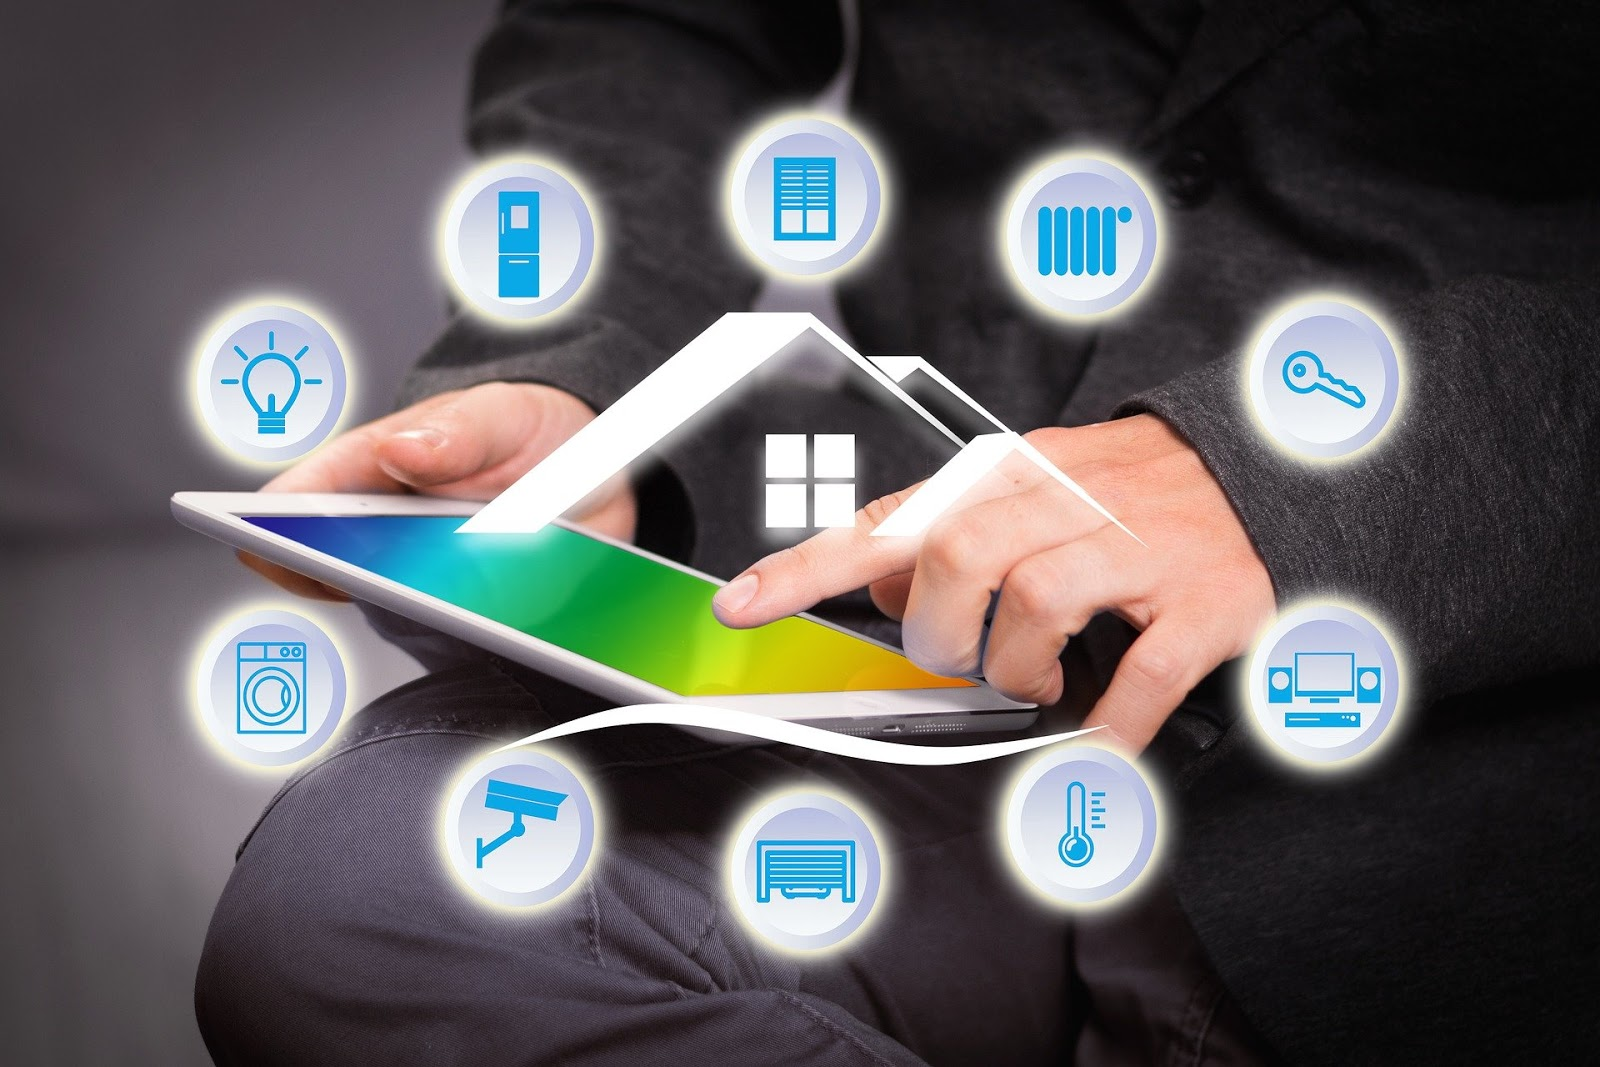 What is home automation? And how does it work?